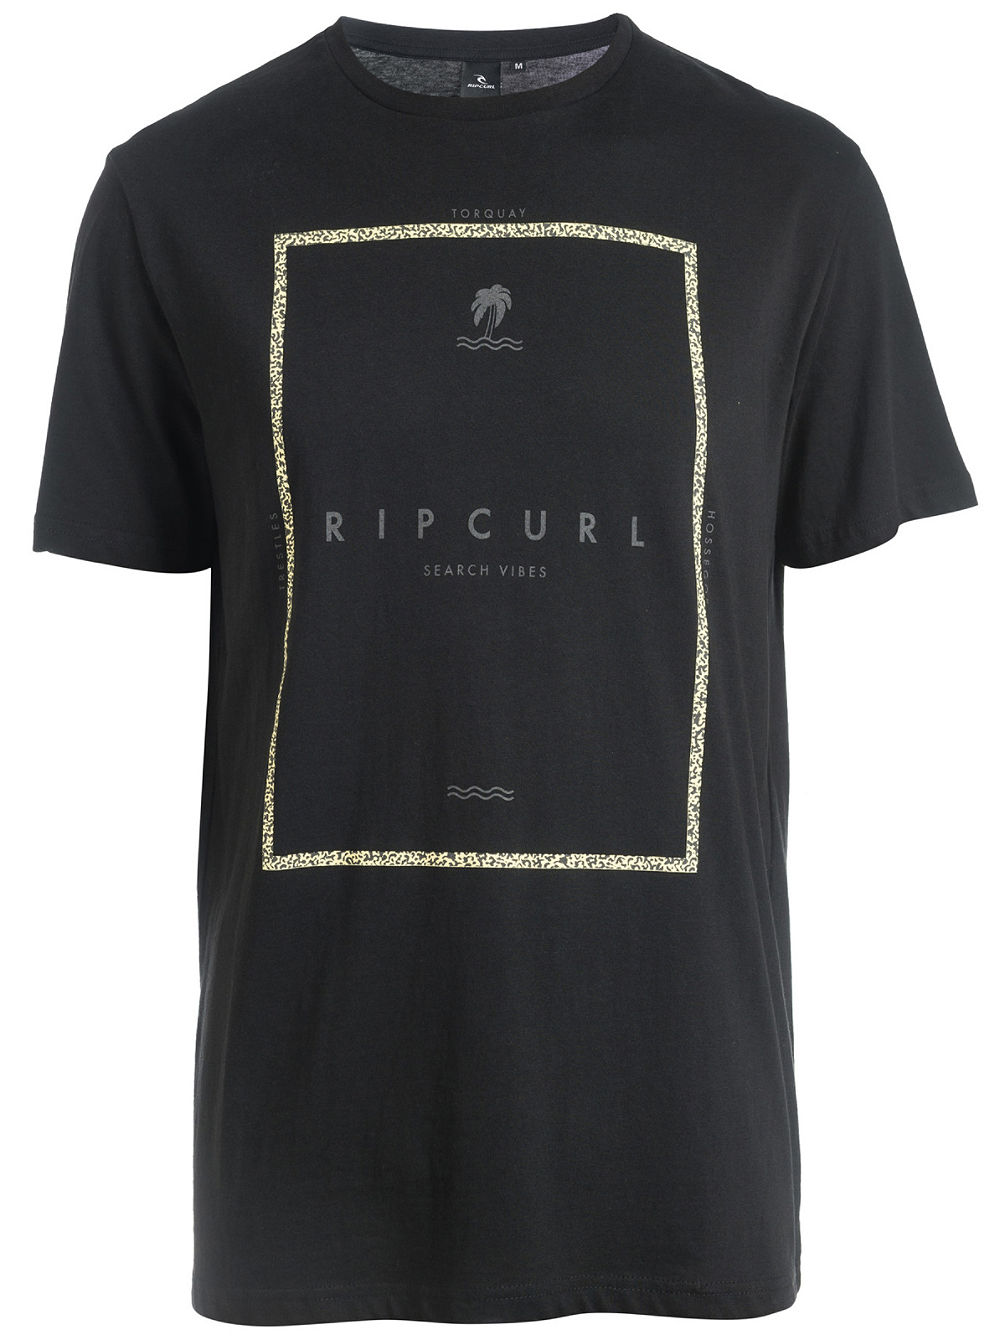 rectangle-search-vibes-t-shirt